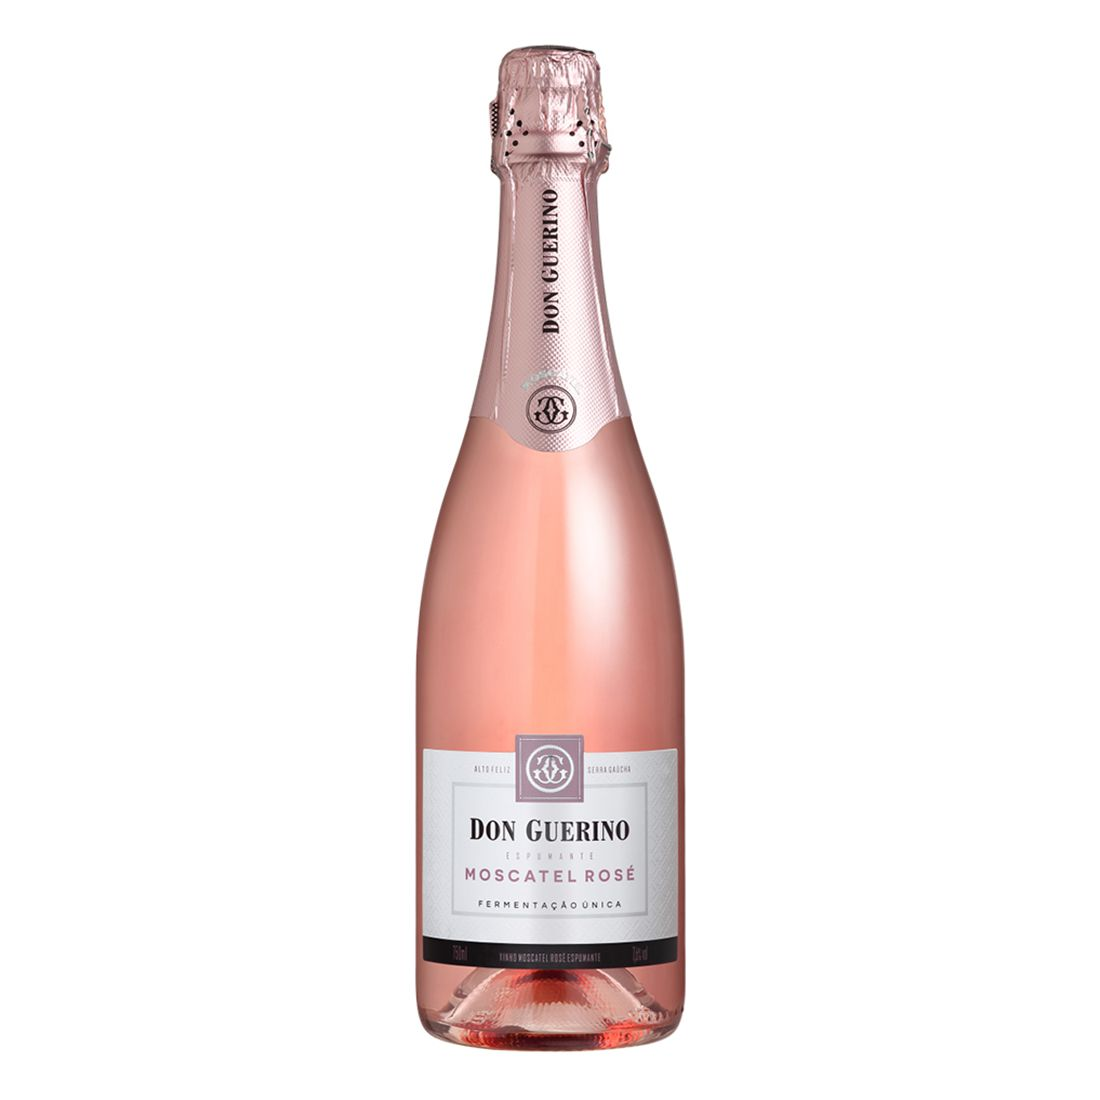 ESPUMANTE DON GUERINO MOSCATEL ROSE 750ML